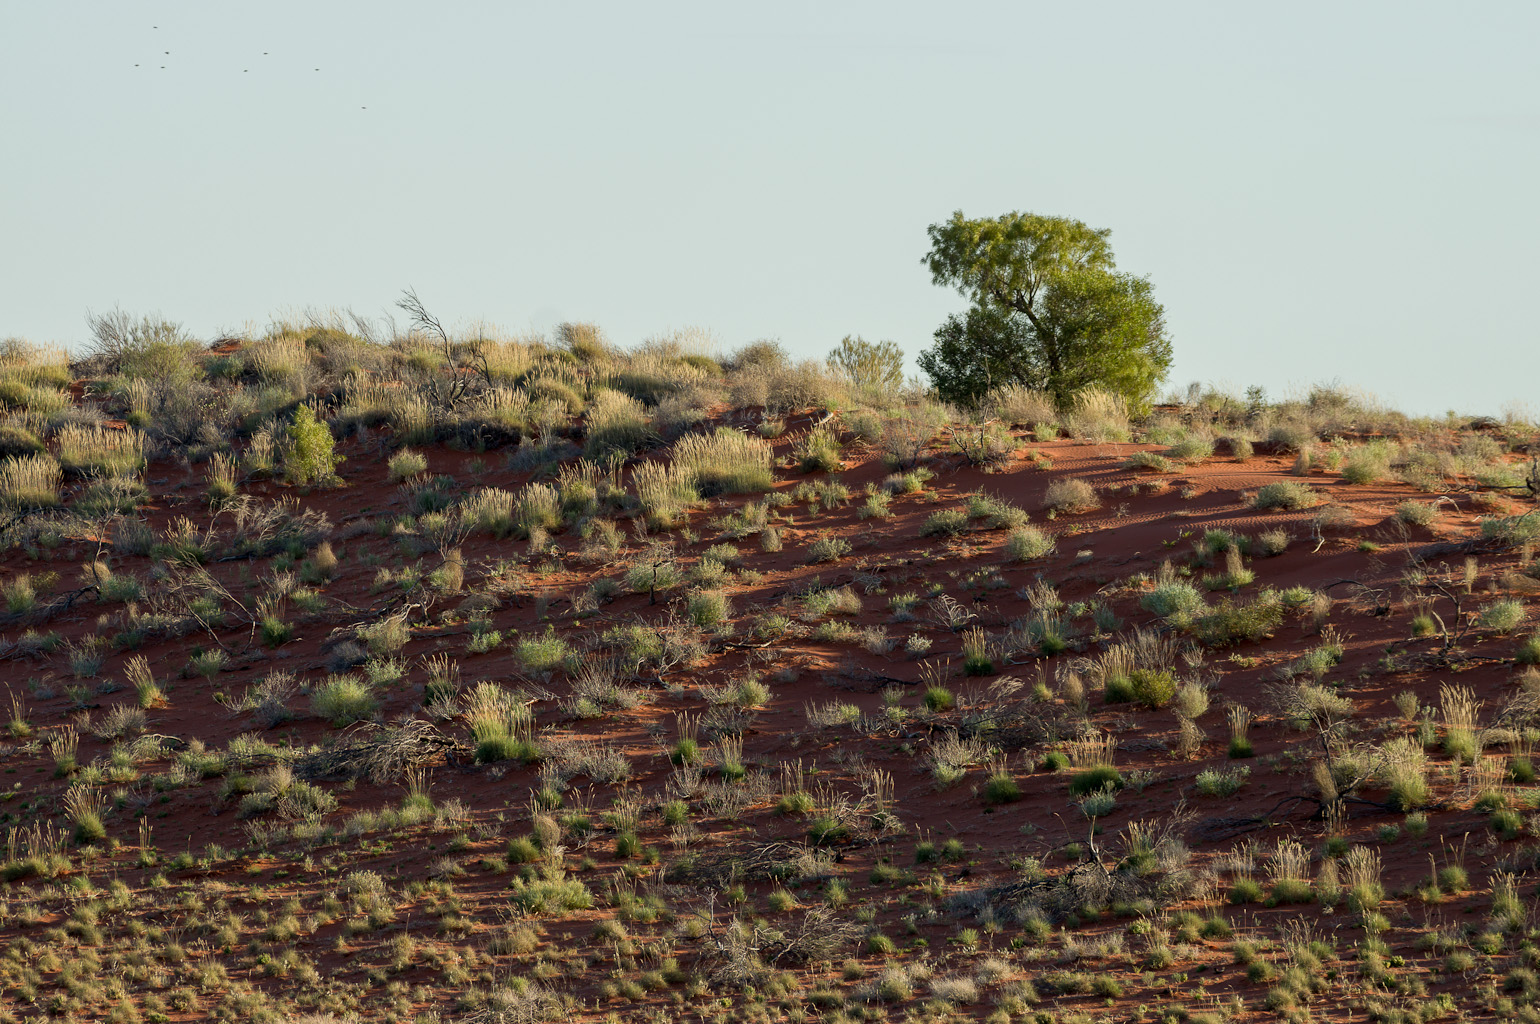 Flowering spinifex on dune. Photo: David Nelson